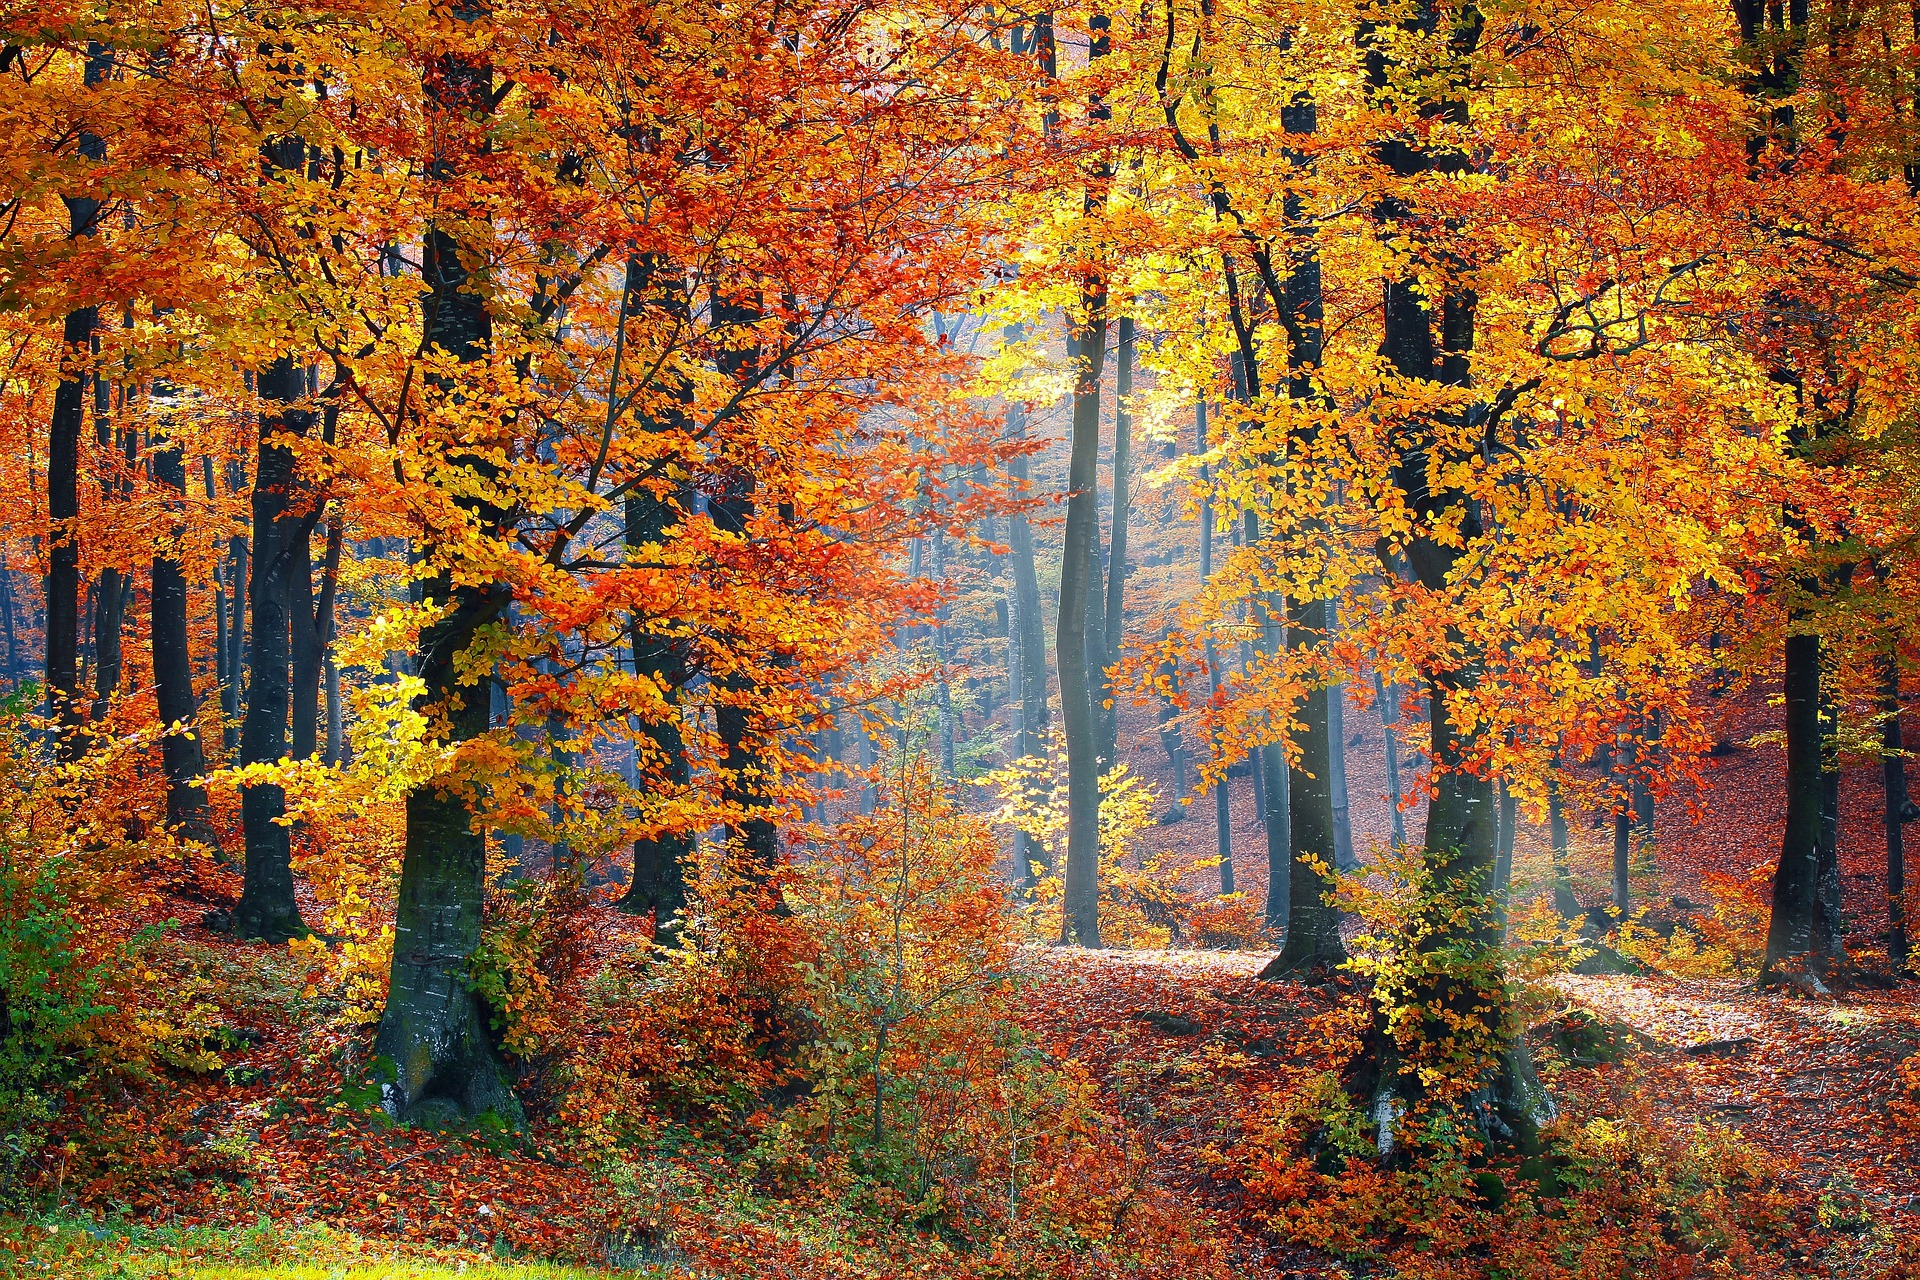 Image shows a wooded clearing with sun filtering down through the trees, in autumn colours.